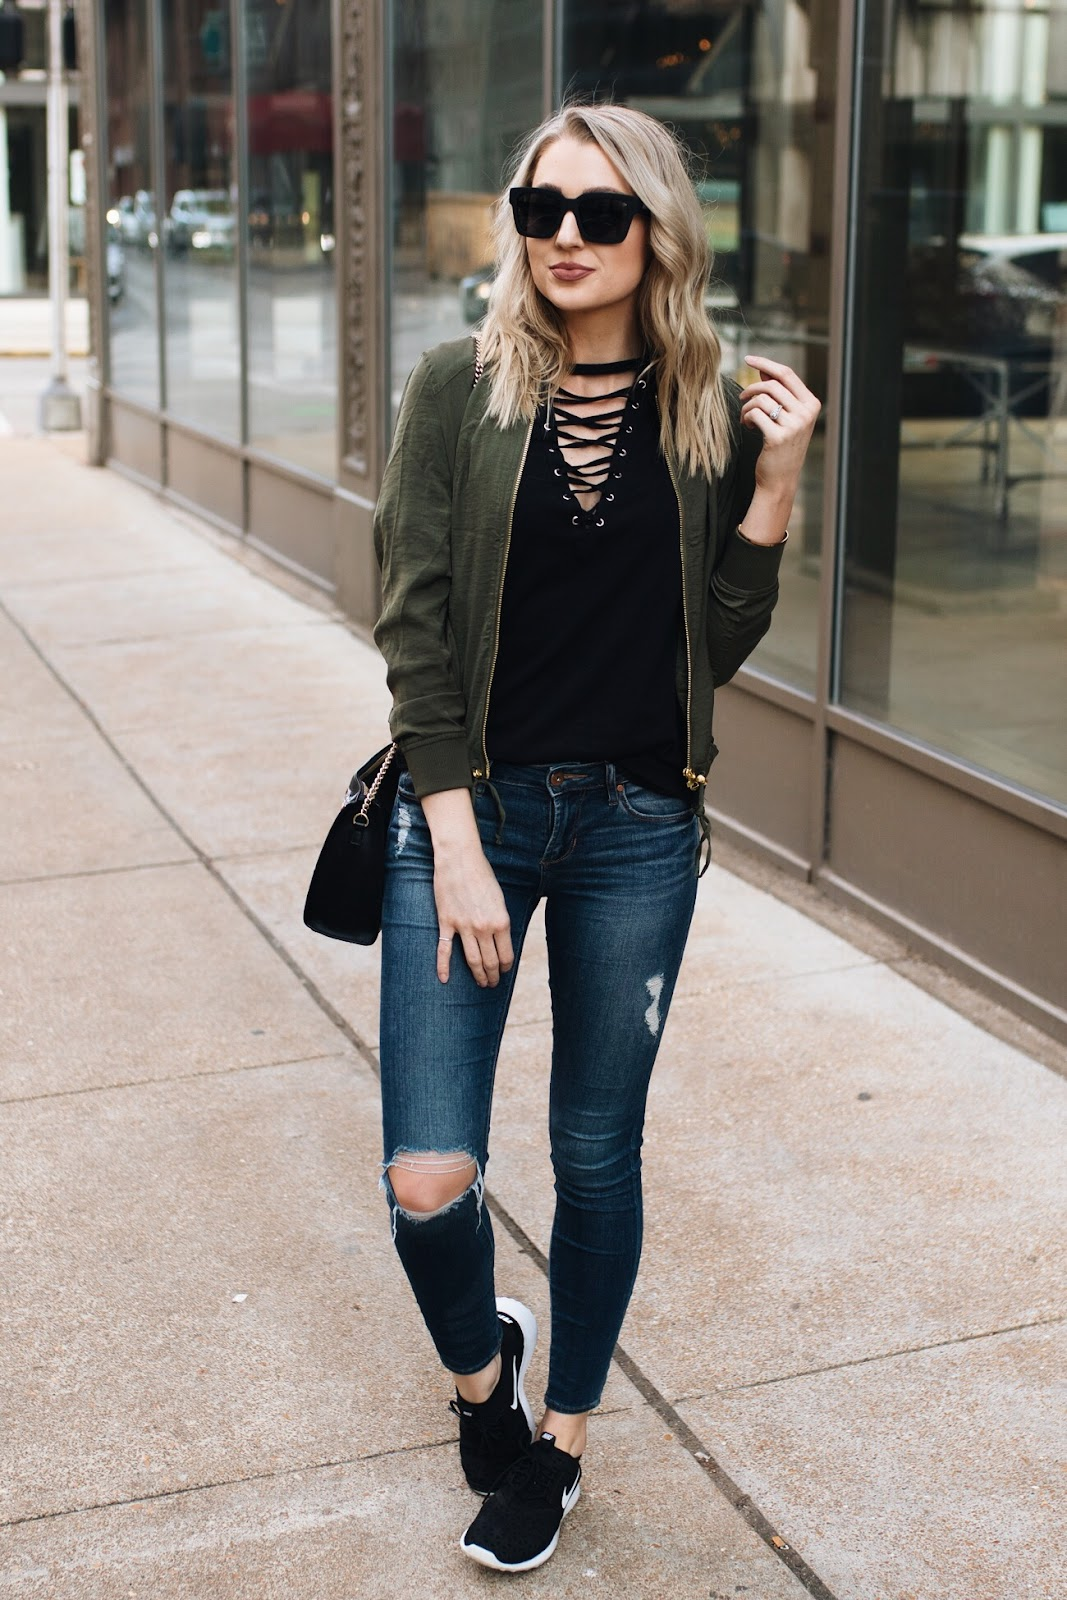 Weekend casual outfit with sneakers